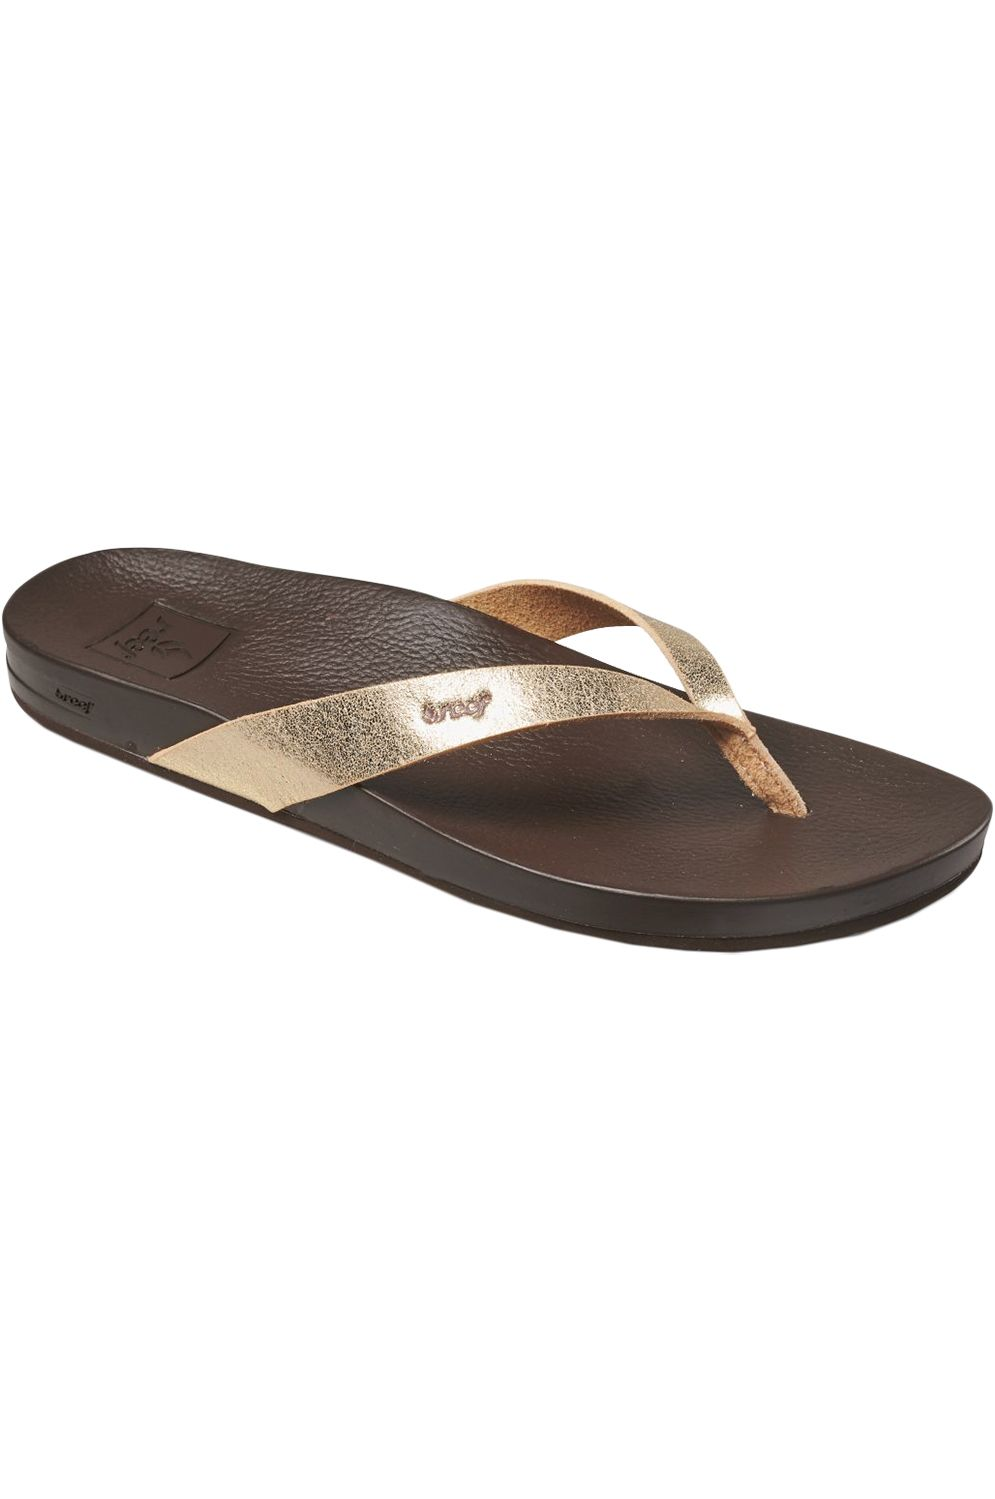 Reef Sandals CUSHION BOUNCE COURT Champagne